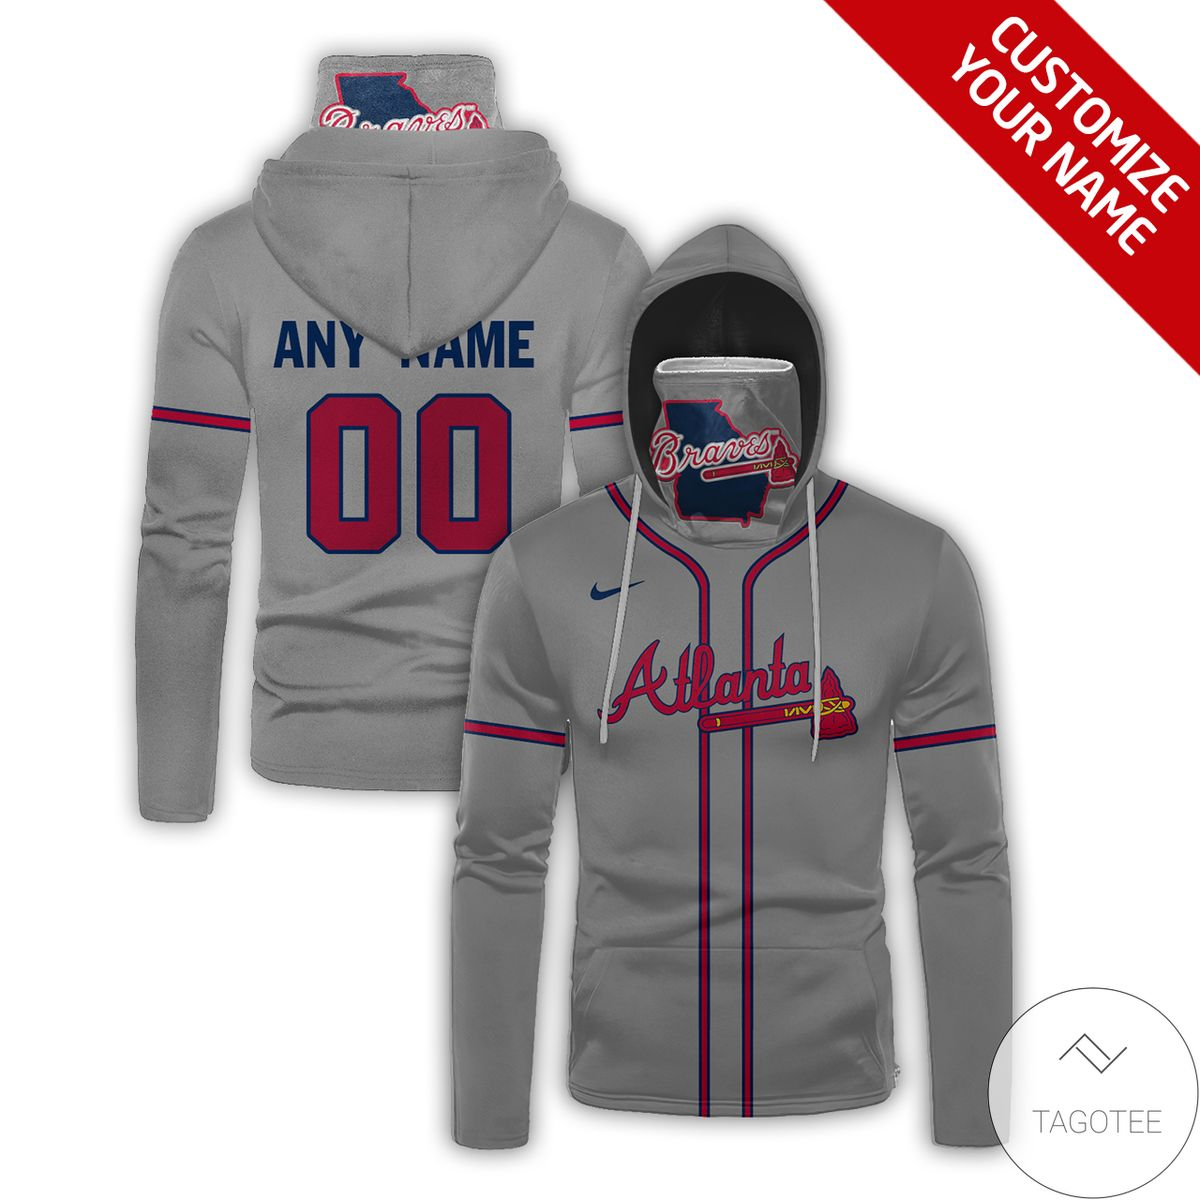 Personalized Name And Number Atlanta Braves Gaiter Mask Hoodie